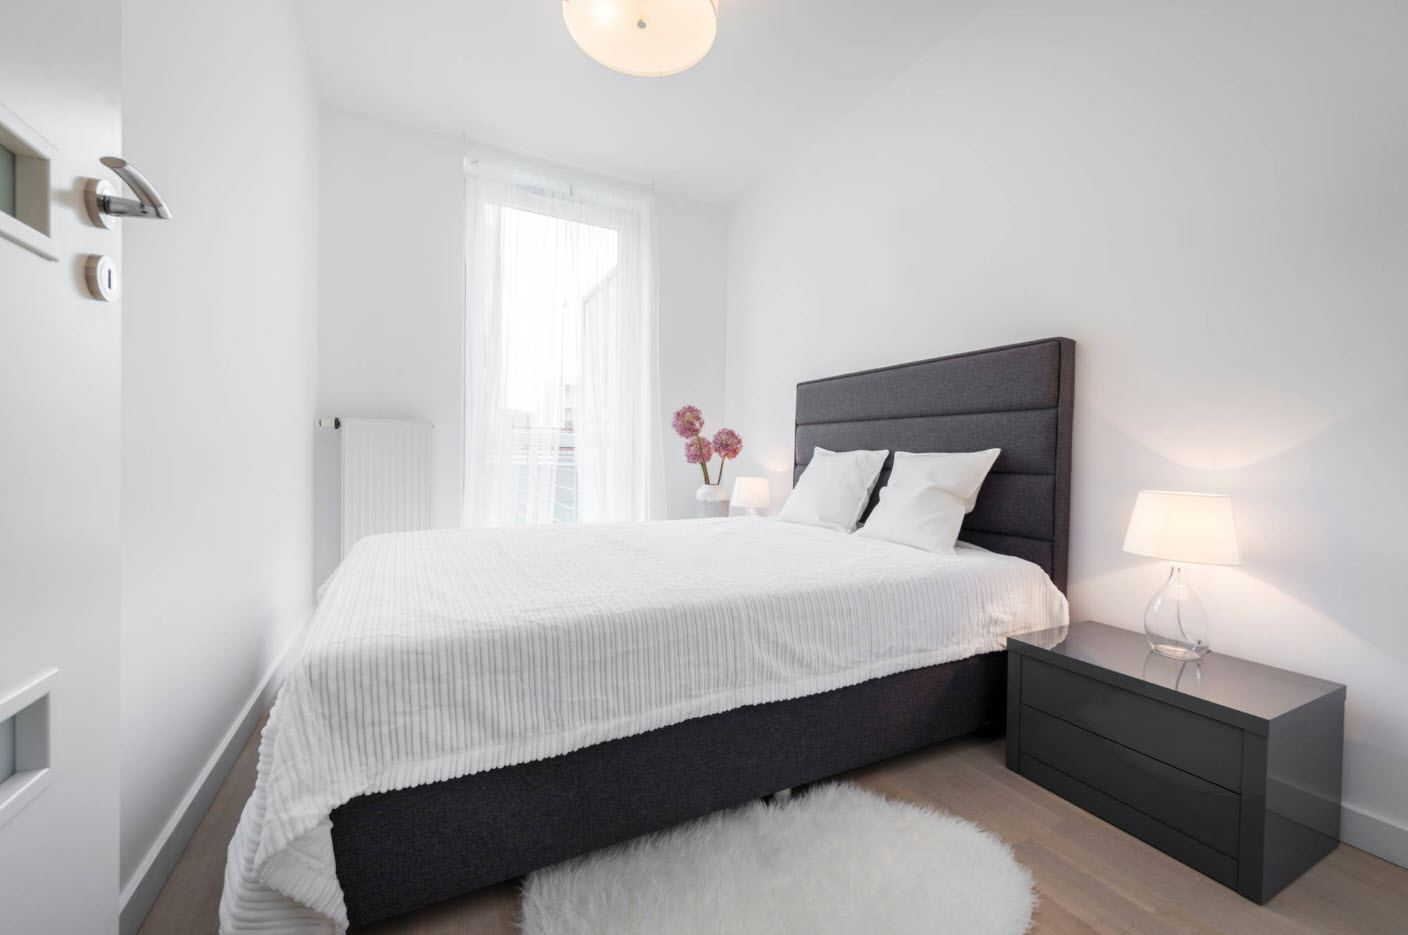 Dark base of the bed and white mattress